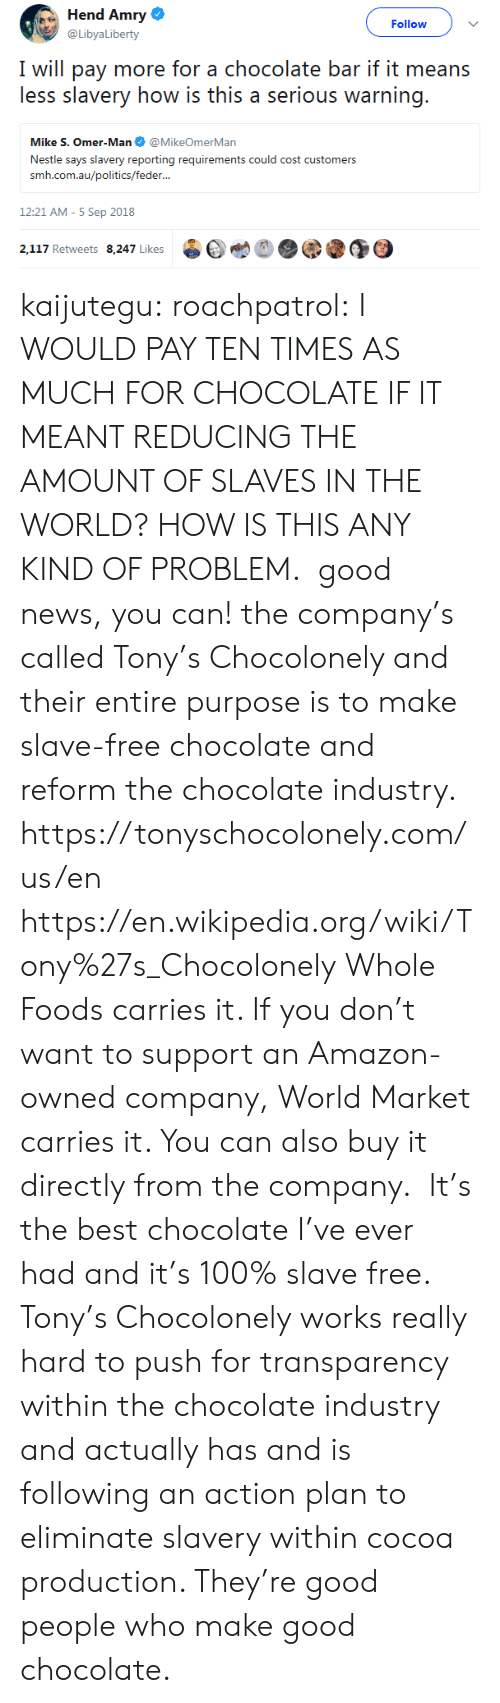 action plan: Hend Amry  @LibyaLiberty  Follow  I will pay more for a chocolate bar if it means  less slavery how is this a serious warning.  Mike S. Omer-Man@MikeOmerMan  Nestle says slavery reporting requirements could cost customers  srmi.exiiauafoliiicxi/icxlkir...  12:21 AM-5 Sep 2018  2,117 Retweets 8.247 Likes  bet  @③ kaijutegu: roachpatrol: I WOULD PAY TEN TIMES AS MUCH FOR CHOCOLATE IF IT MEANT REDUCING THE AMOUNT OF SLAVES IN THE WORLD? HOW IS THIS ANY KIND OF PROBLEM.  good news, you can! the company's called Tony's Chocolonely and their entire purpose is to make slave-free chocolate and reform the chocolate industry. https://tonyschocolonely.com/us/en https://en.wikipedia.org/wiki/Tony%27s_Chocolonely Whole Foods carries it. If you don't want to support an Amazon-owned company, World Market carries it. You can also buy it directly from the company.  It's the best chocolate I've ever had and it's 100% slave free. Tony's Chocolonely works really hard to push for transparency within the chocolate industry and actually has and is following an action plan to eliminate slavery within cocoa production. They're good people who make good chocolate.